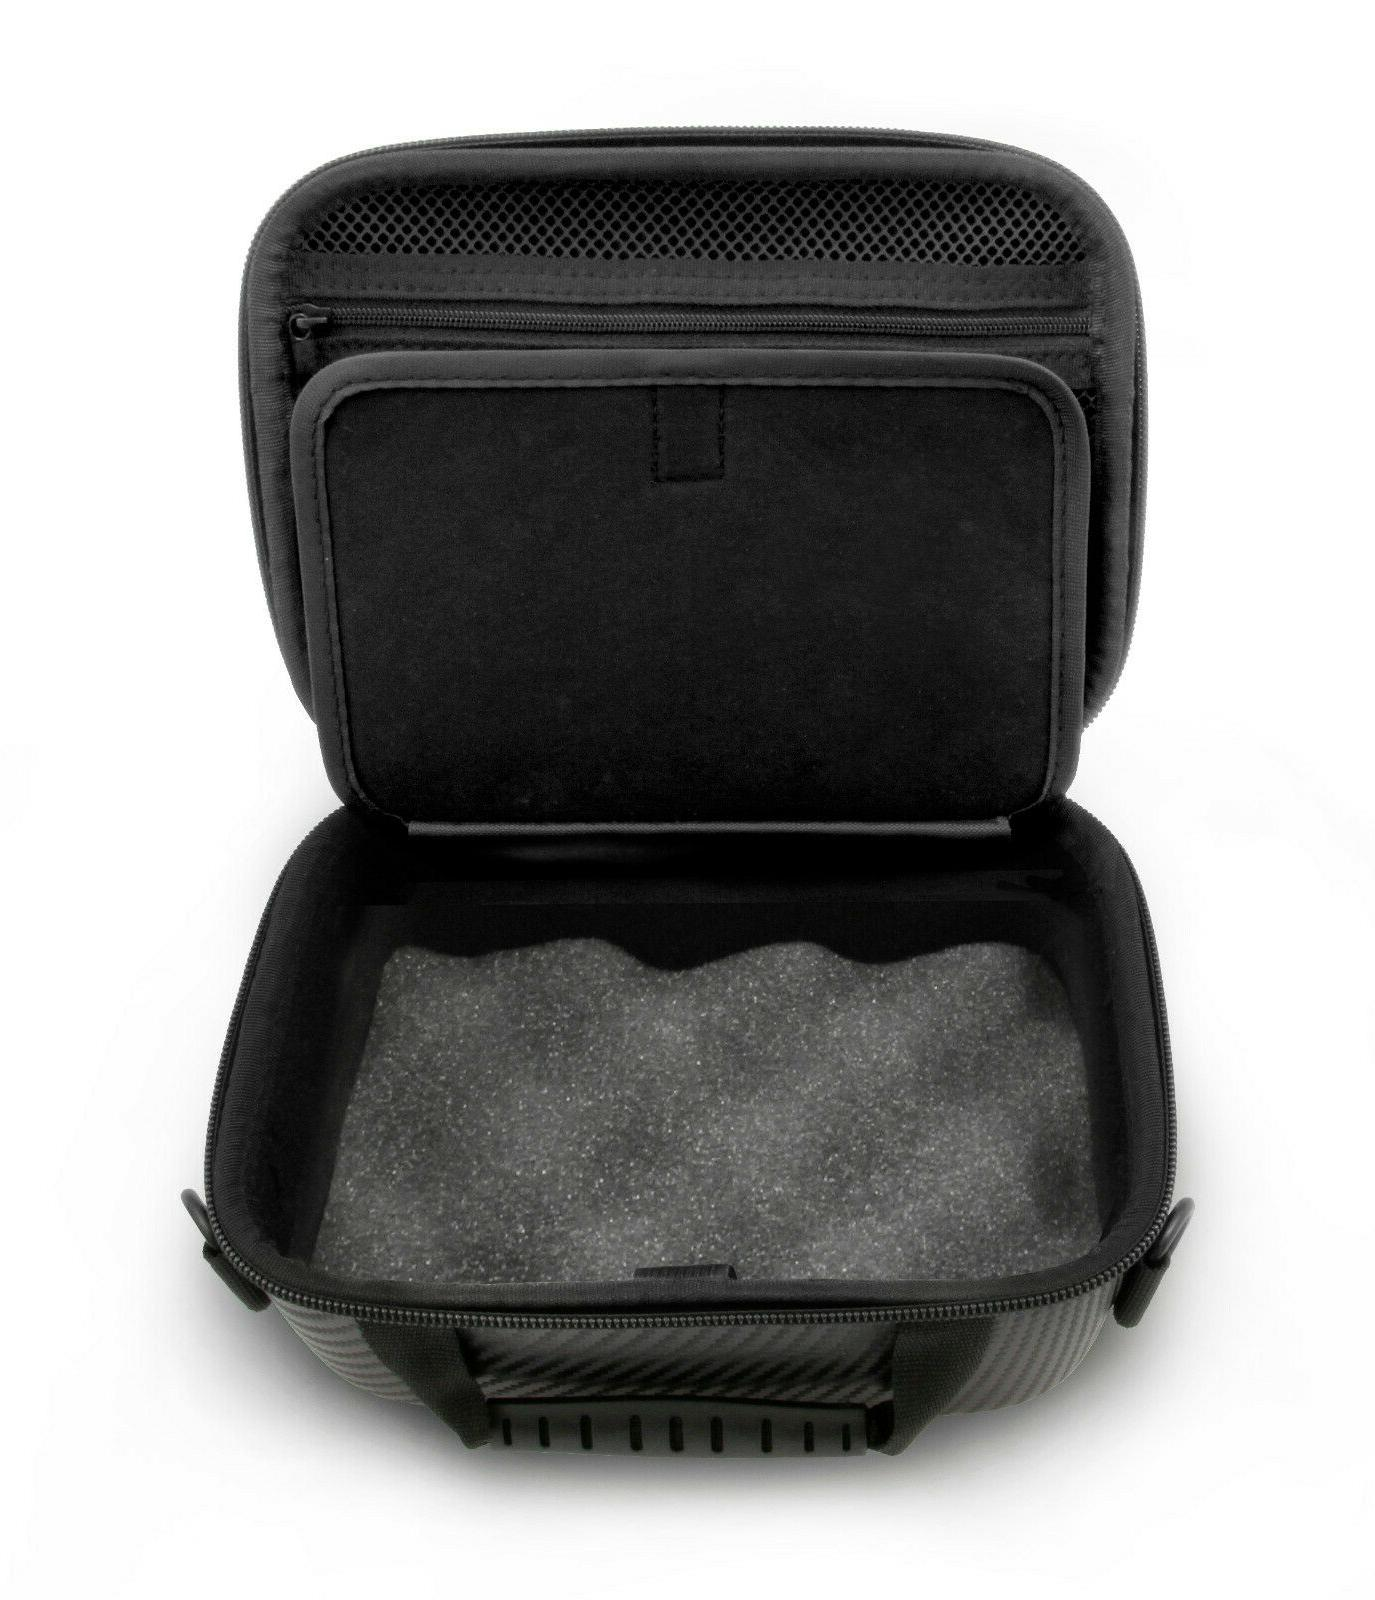 8 inch video projector case fits goodee